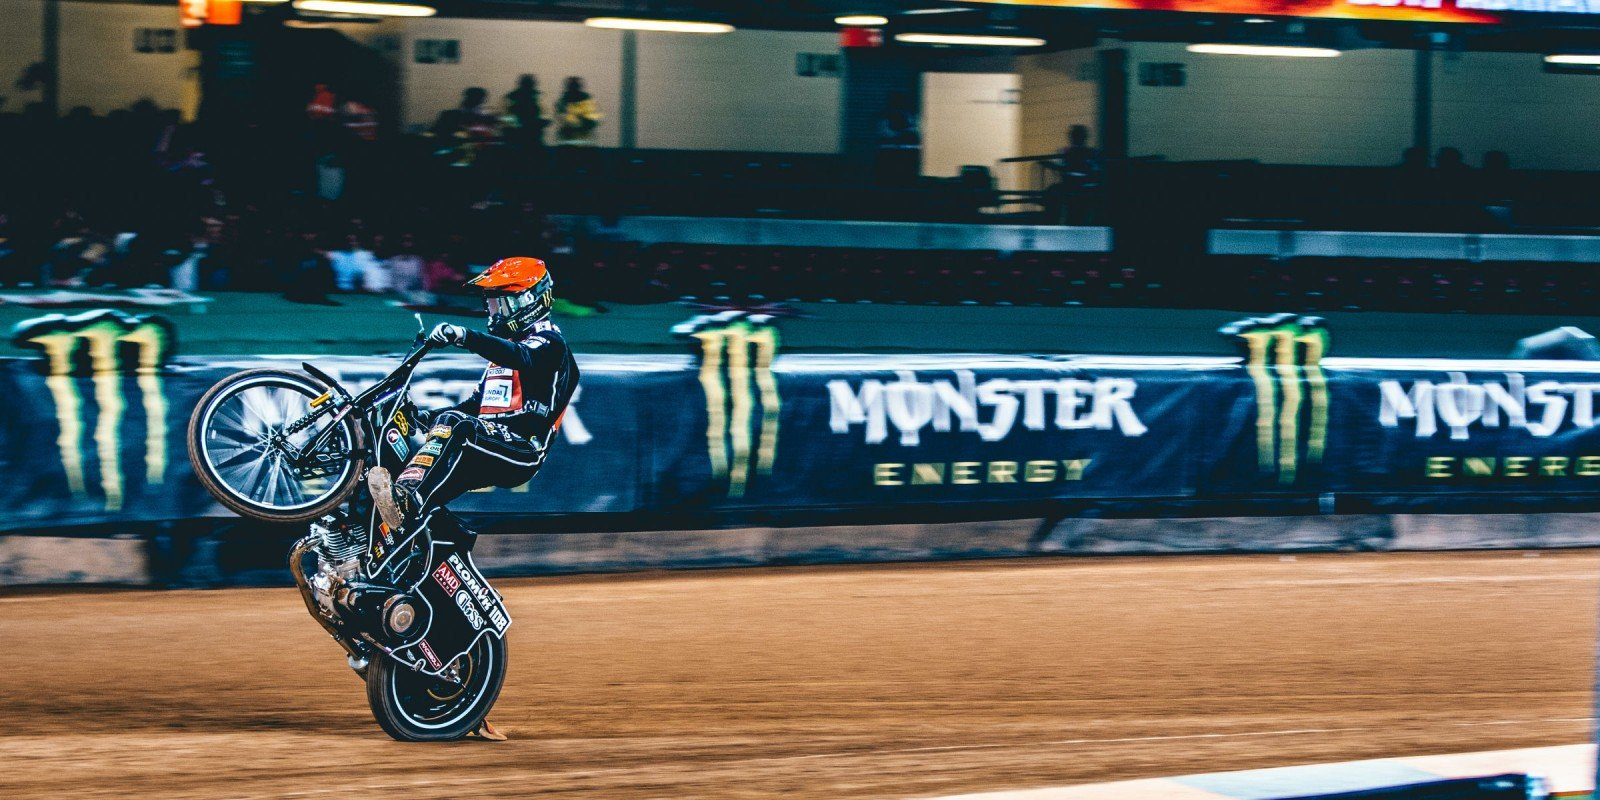 Images from the 2017 British Speedway Grand Prix from Cardiff, Wales